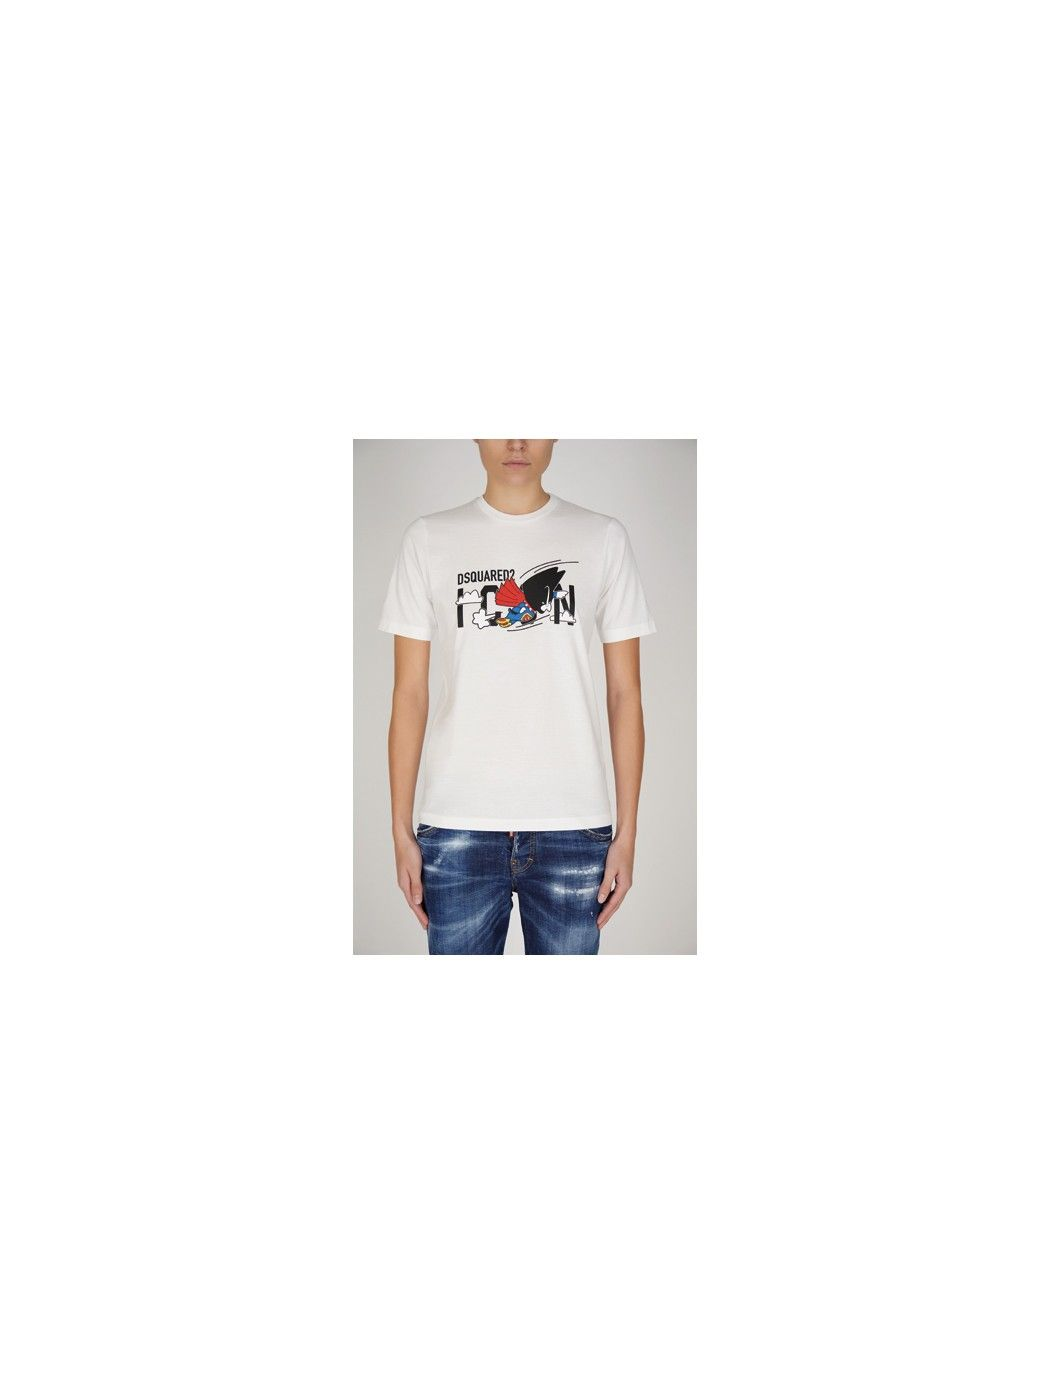 T-T-SHIRT BIANCA CON STAMPA LOGO DSQUARED2 S80GC0017S23009 100